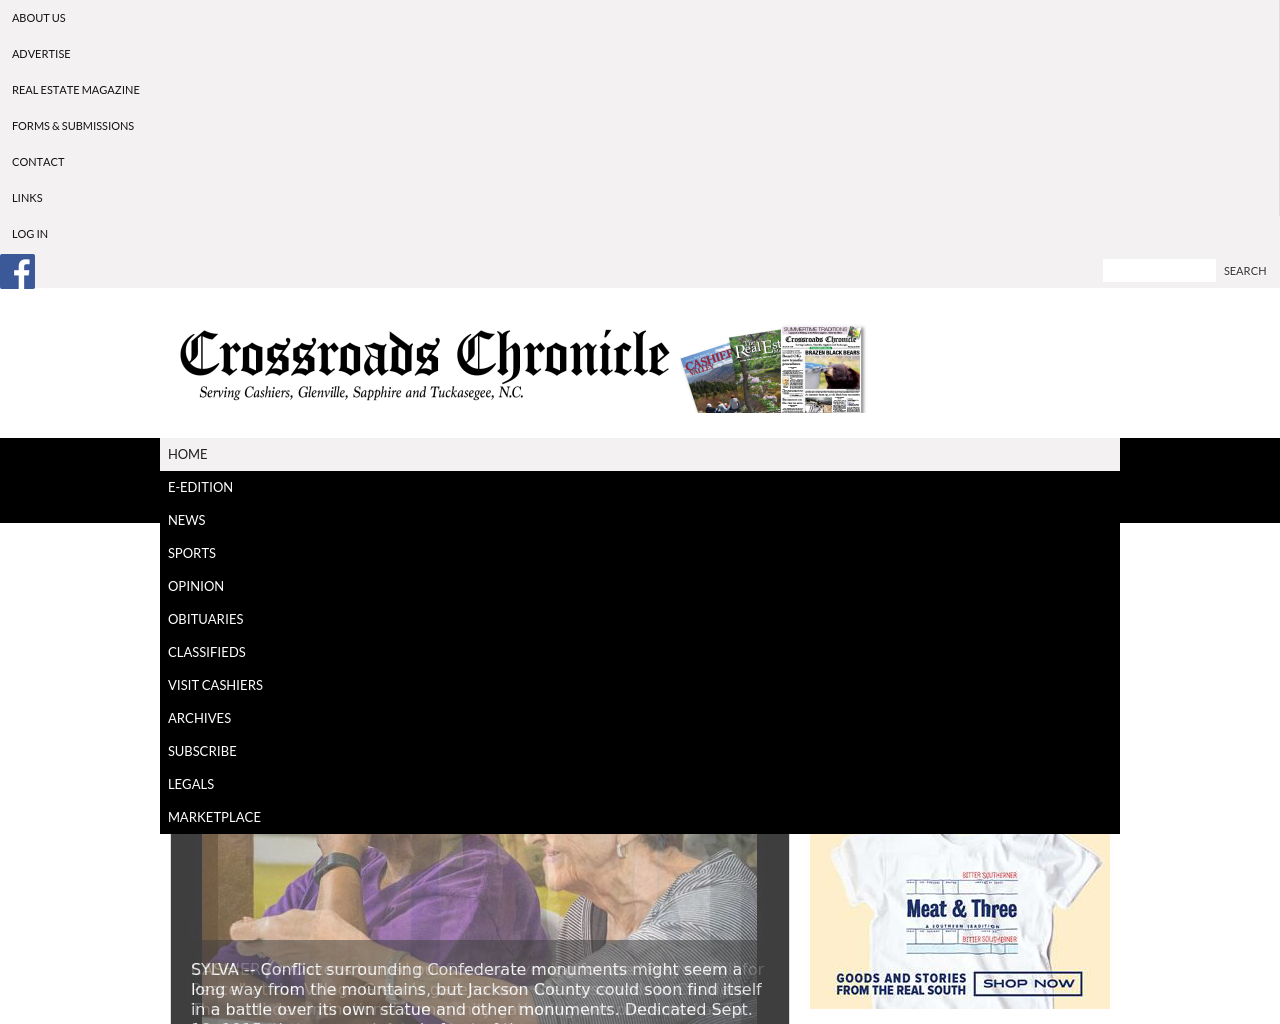 Crossroads-Chronicle-Advertising-Reviews-Pricing